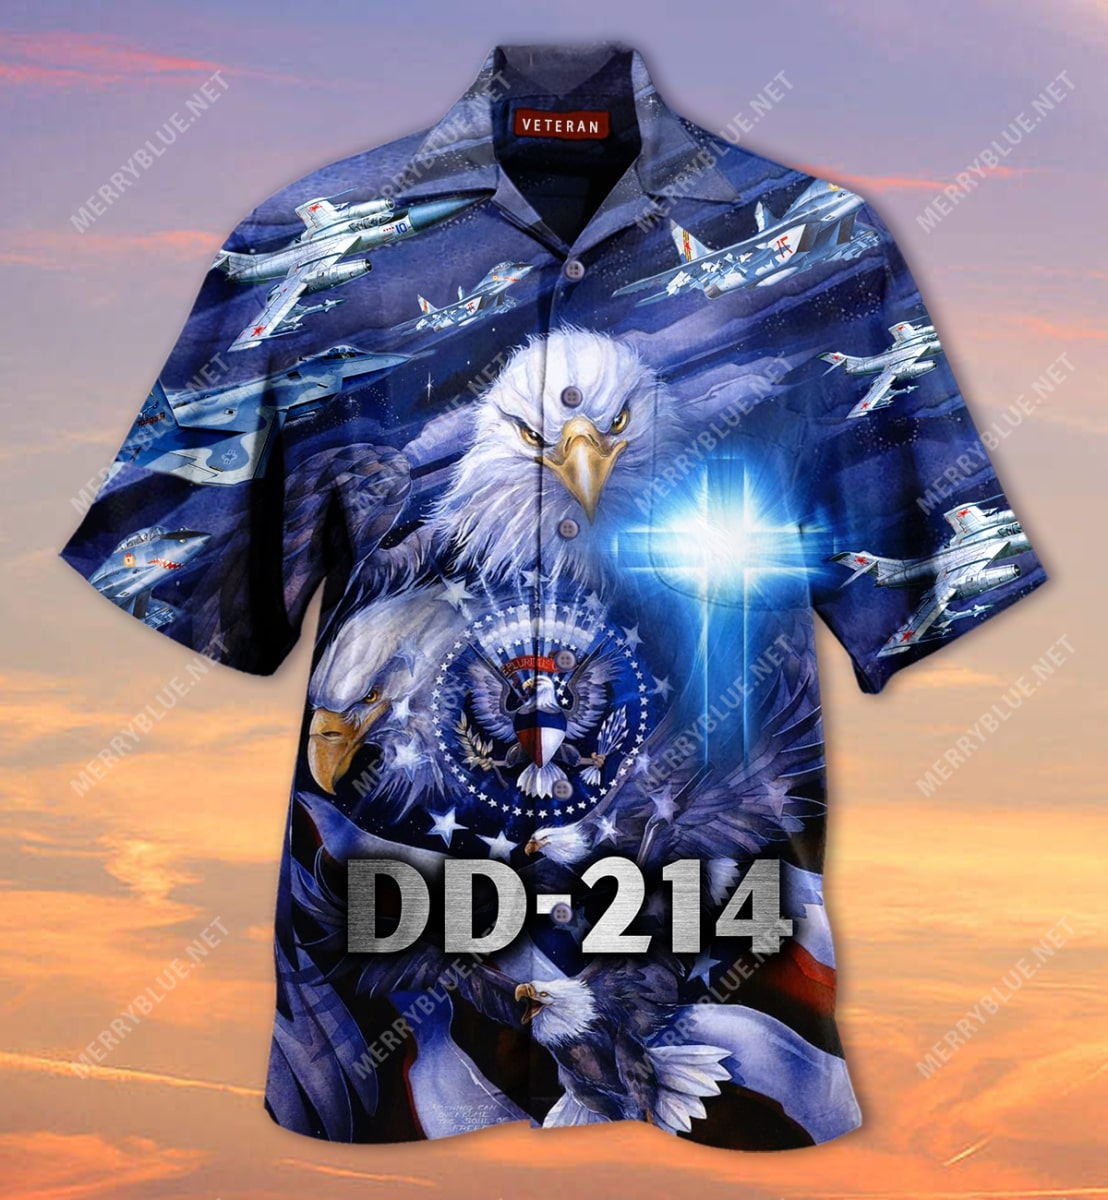 united state veteran on the sky all over printed hawaiian shirt 4